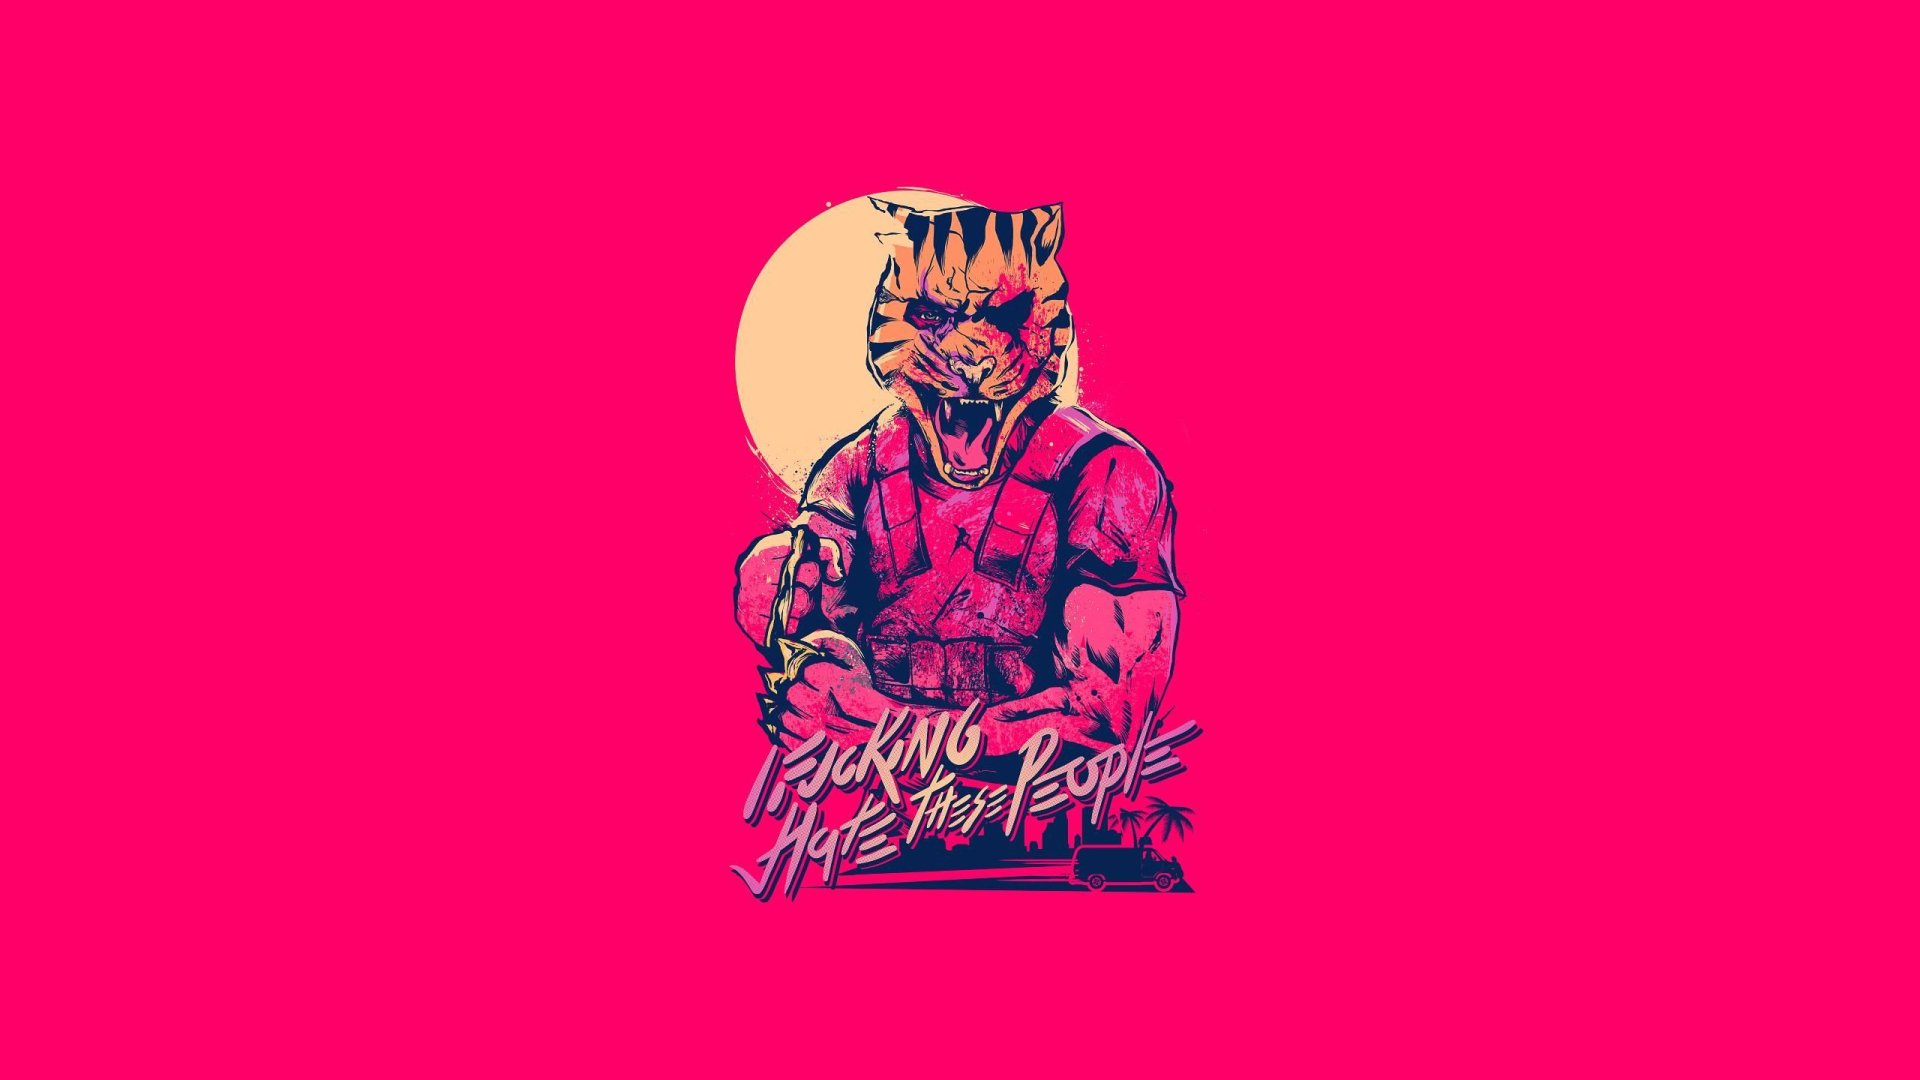 Hotline Miami 2: Wrong Number Full HD Wallpaper And